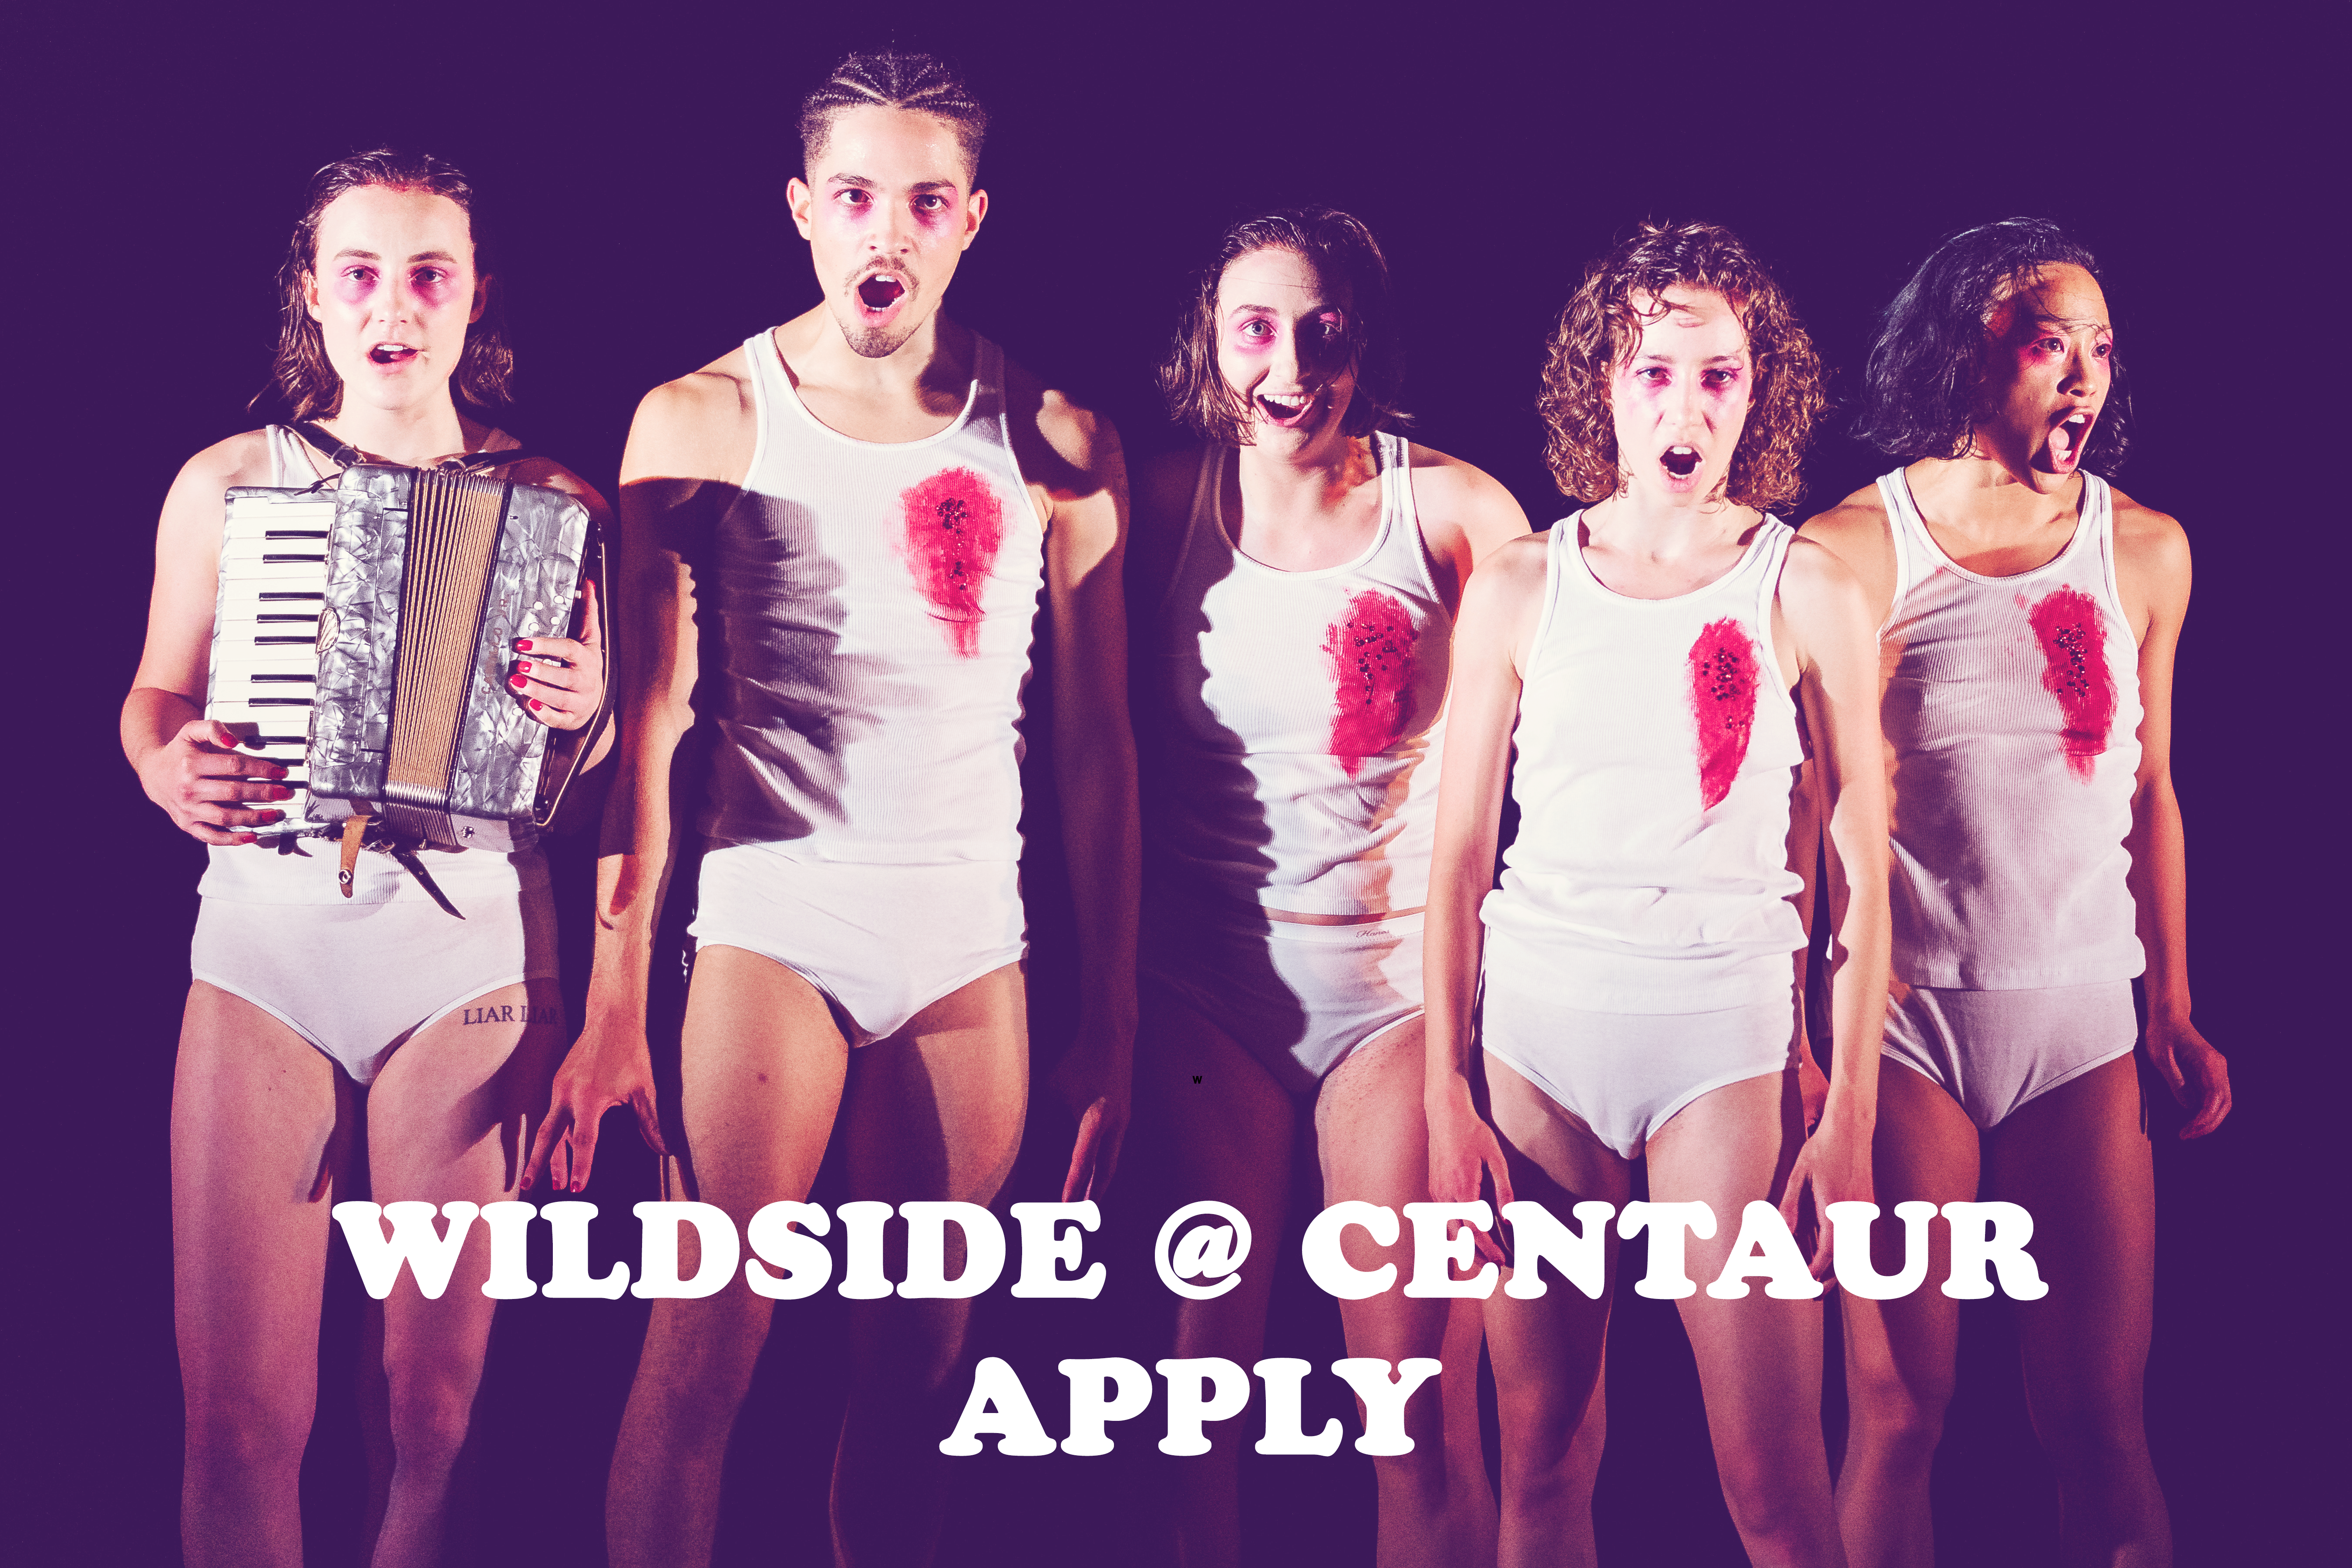 """5 humans with open mouths are dressed in white underwear and tank tops and have red wounds painted on their torsos. One person holds an accordion. Text reads """"WILDSIDE 2 CENTAUR. APPLY"""""""